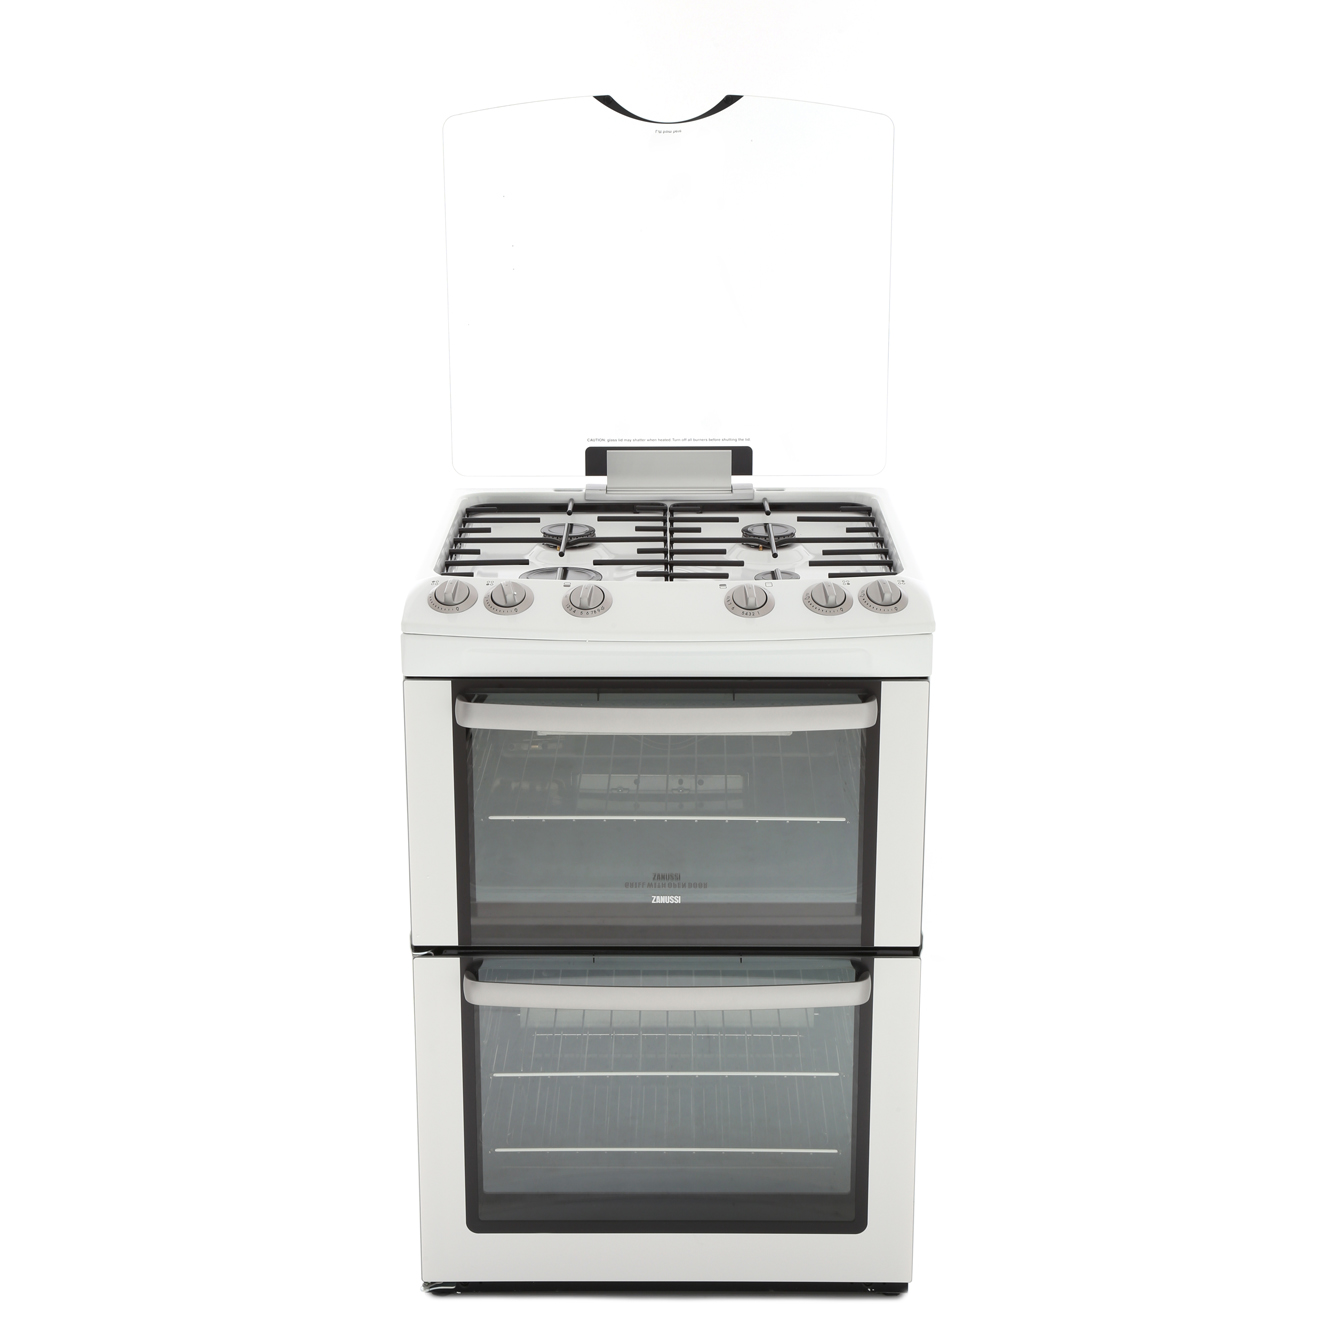 Zanussi ZCG669GW Gas Cooker with Double Oven